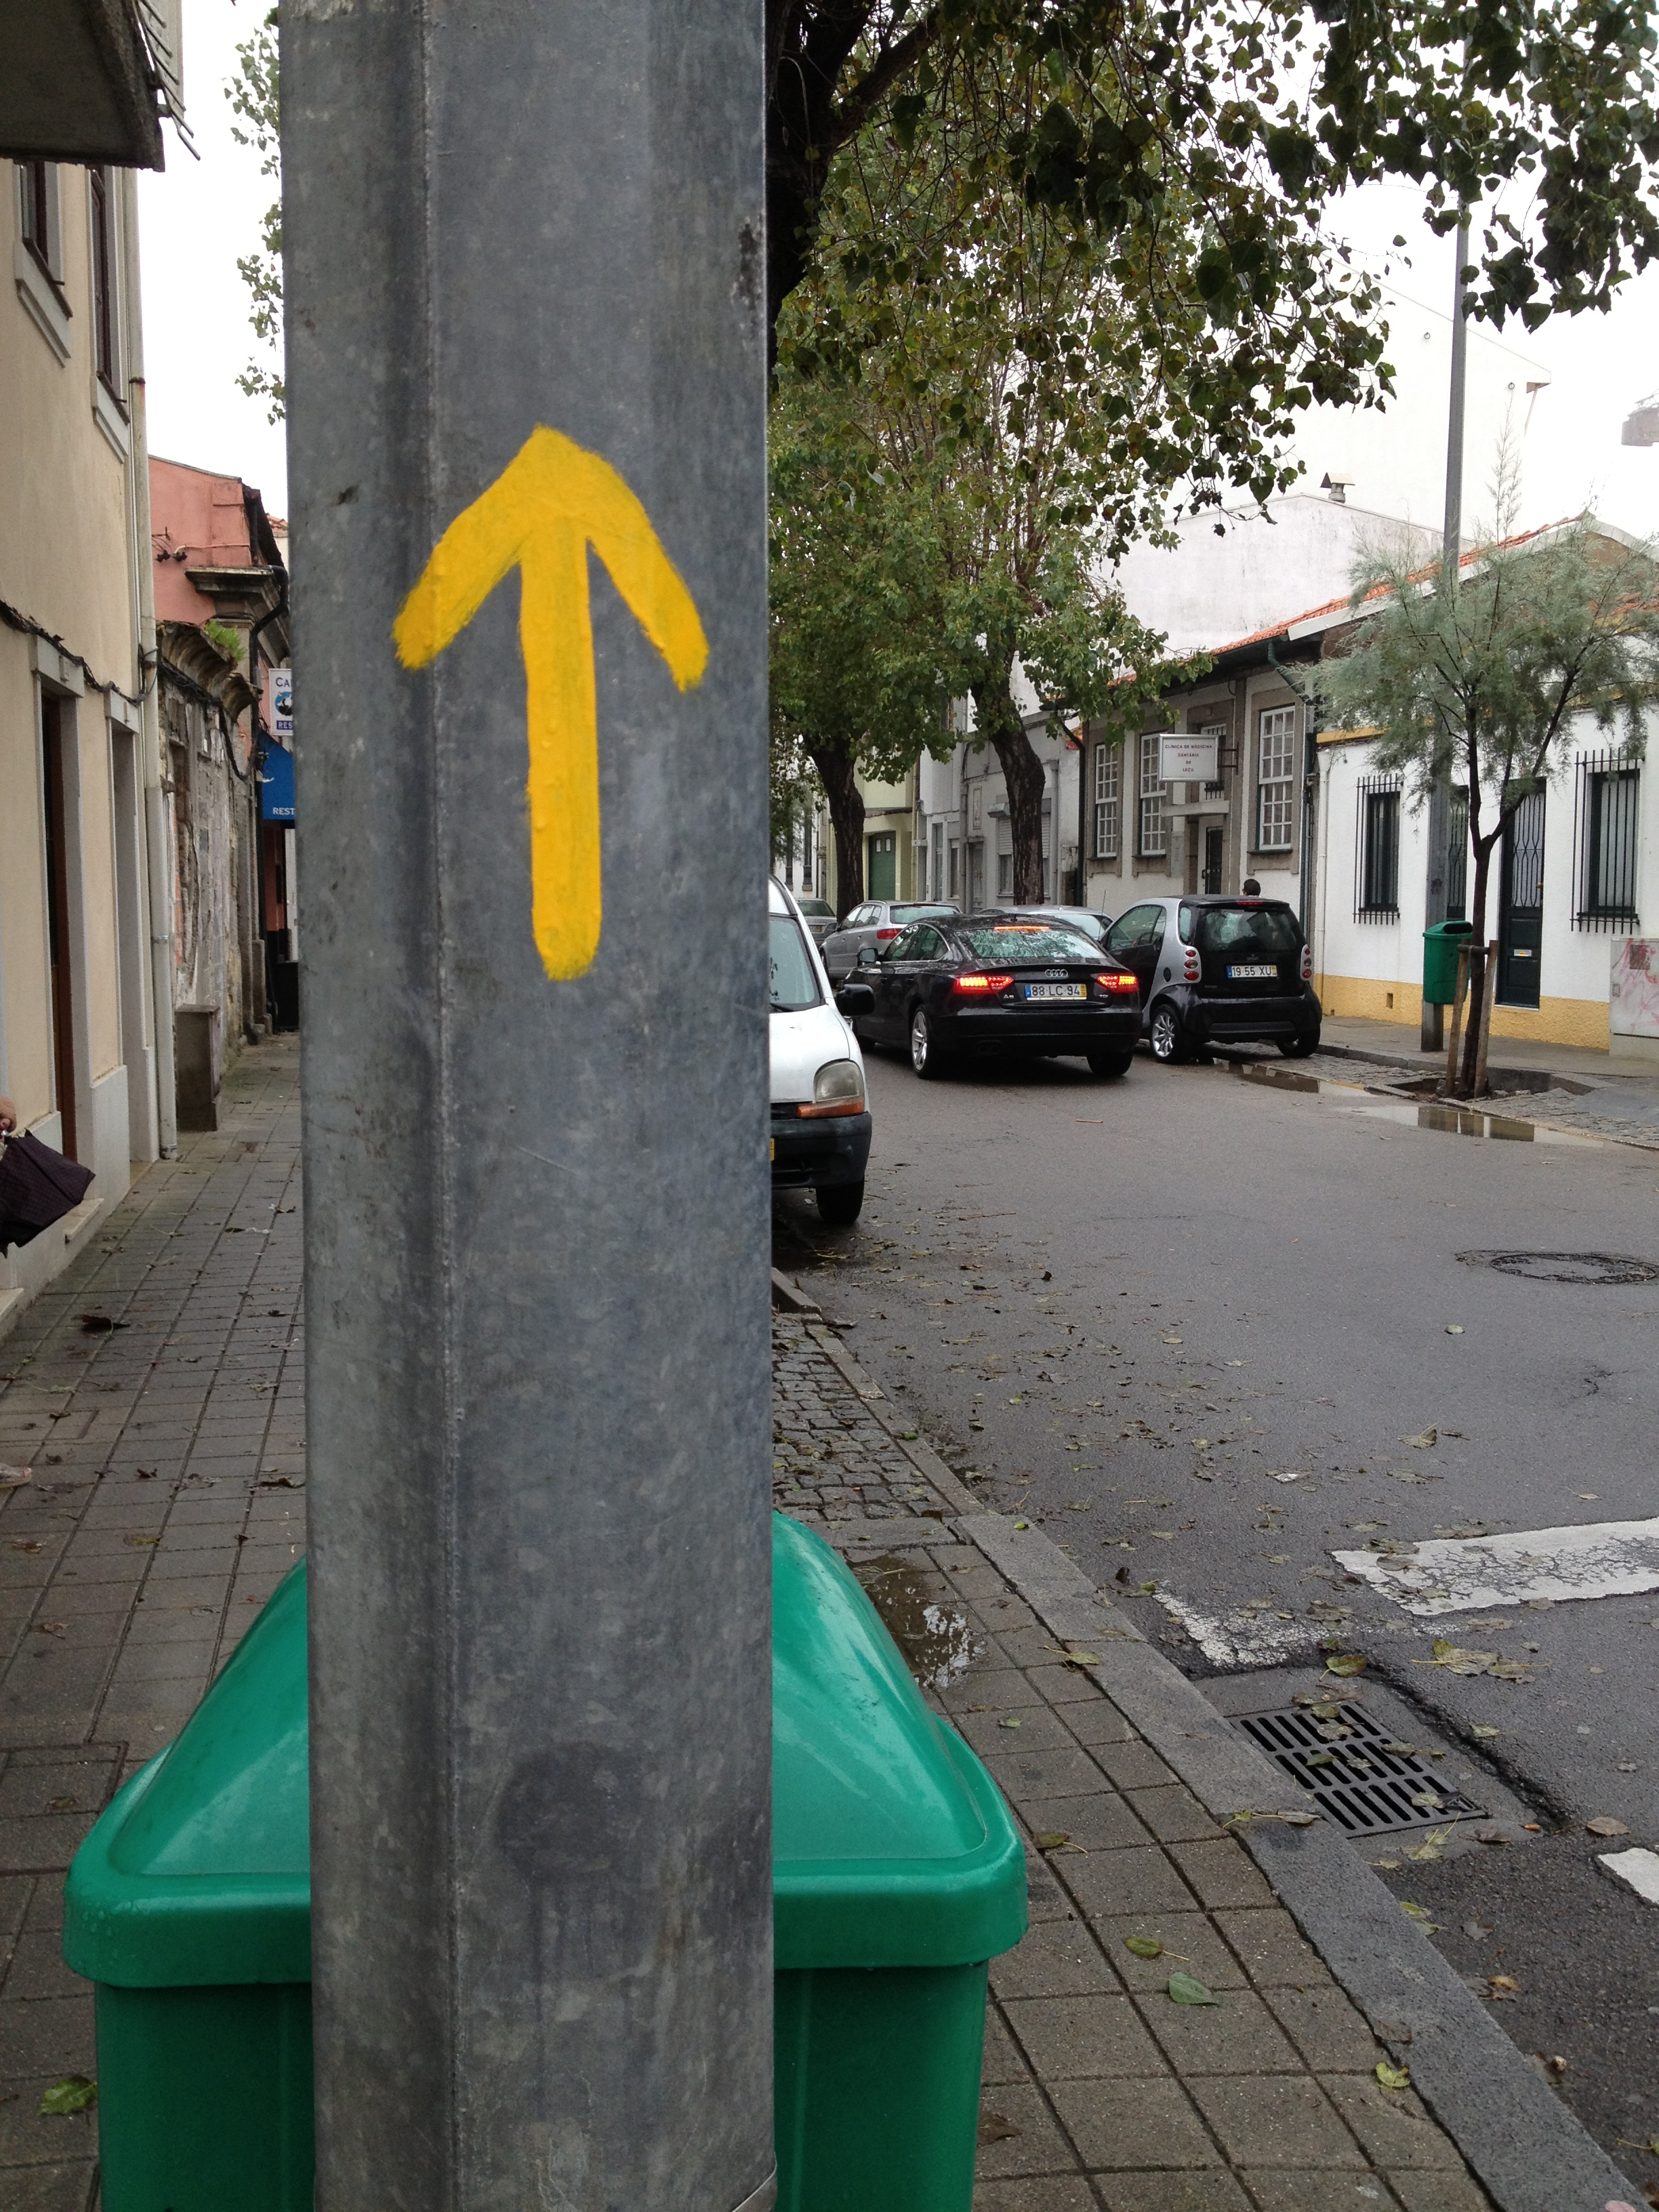 The first yellow arrow I would see.